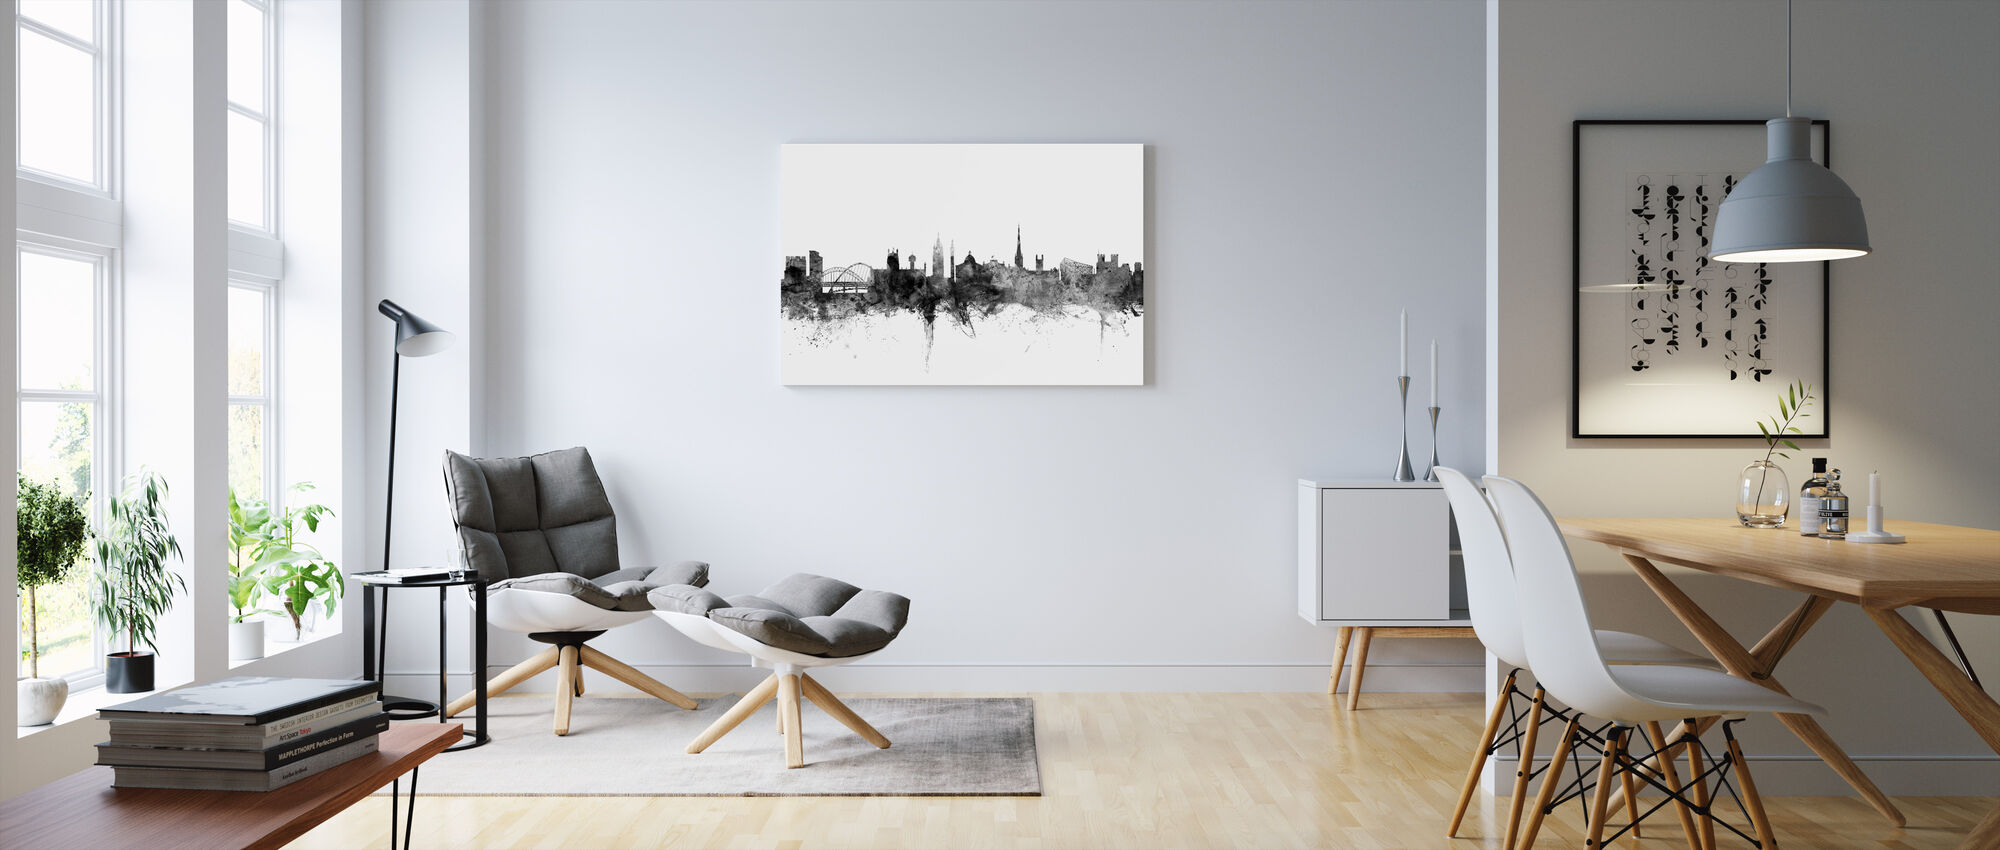 newcastle uk skyline black impression sur toile en ligne pas cher photowall. Black Bedroom Furniture Sets. Home Design Ideas